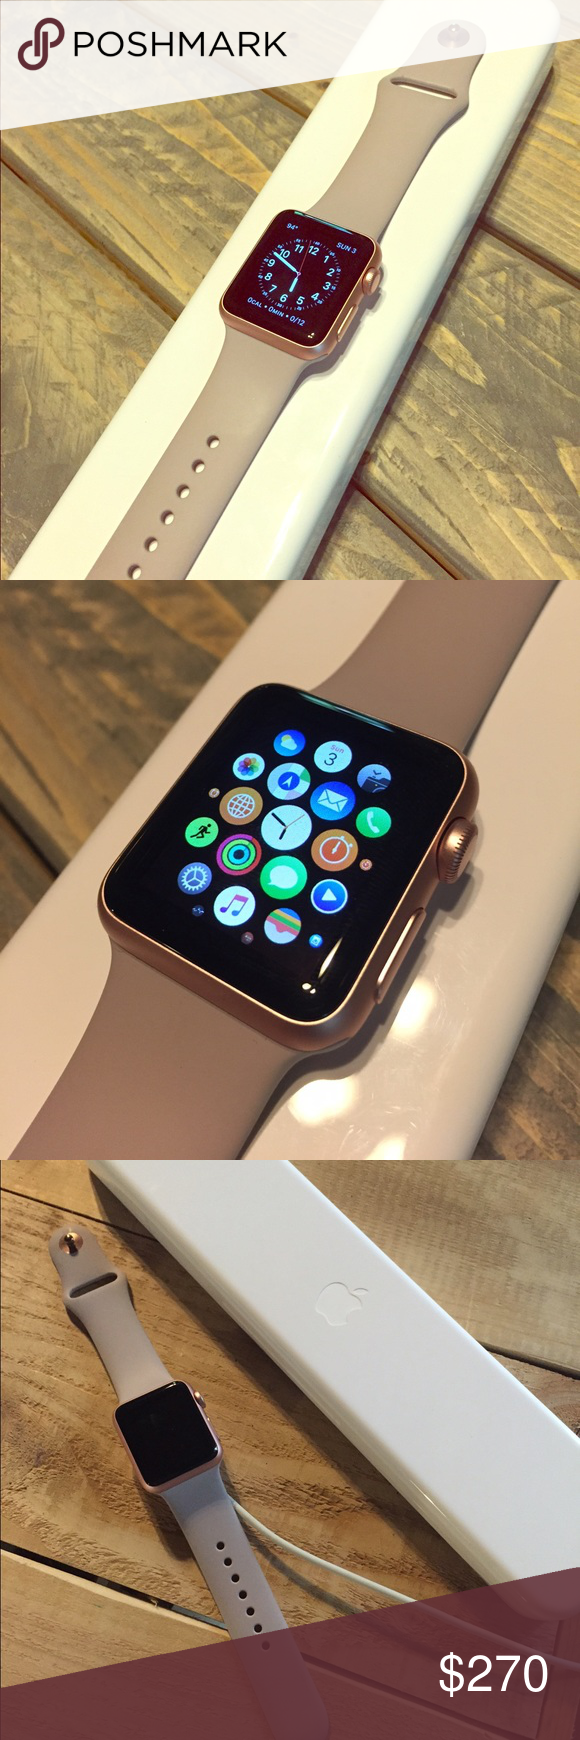 Rose gold Apple Watch (With images) Rose gold apple